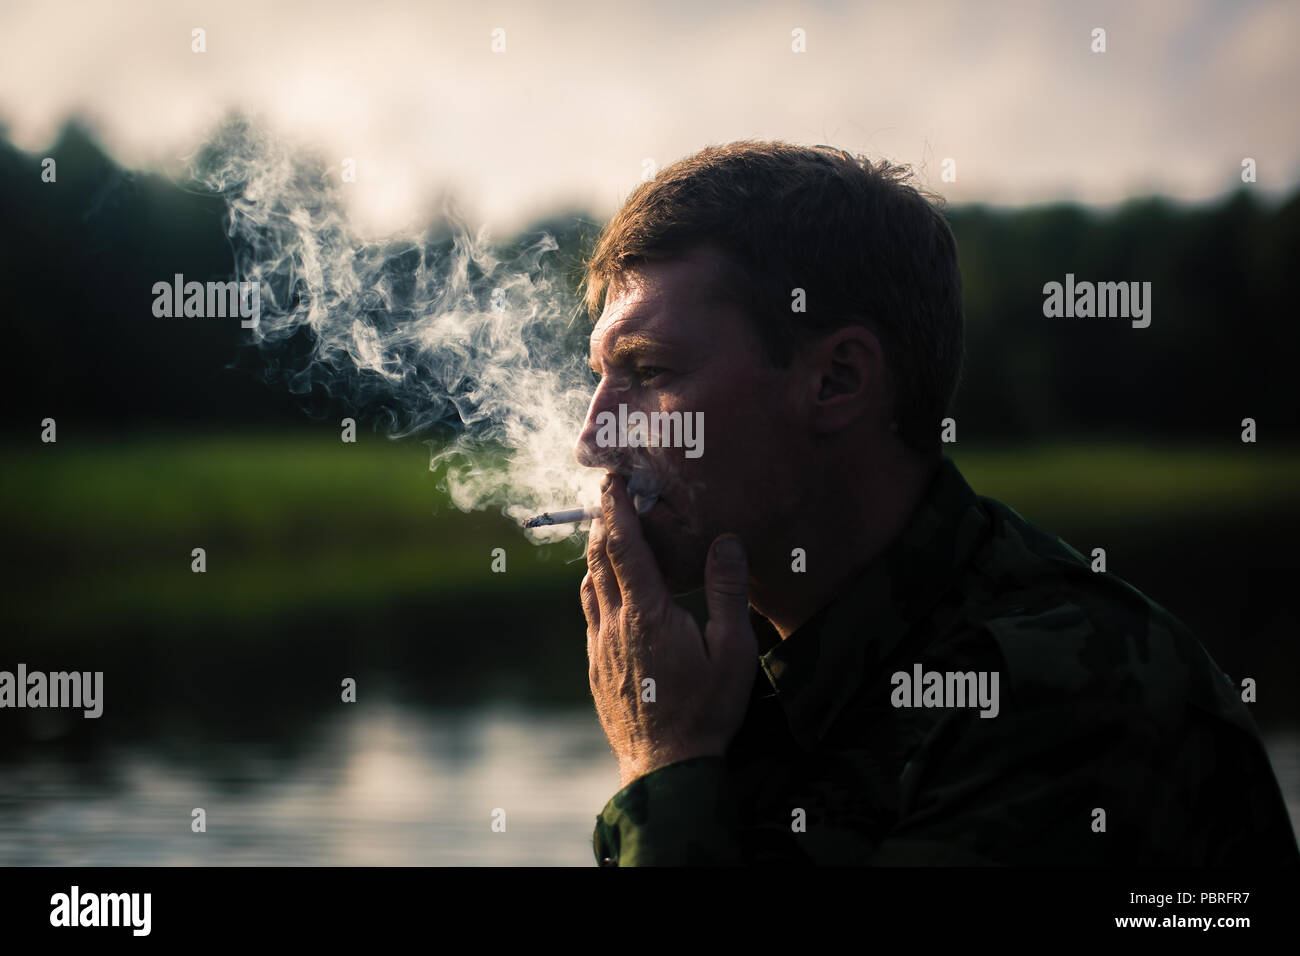 Man Smoking close-up, camouflage clothing, outdoor. Thick smoke and contour light. - Stock Image